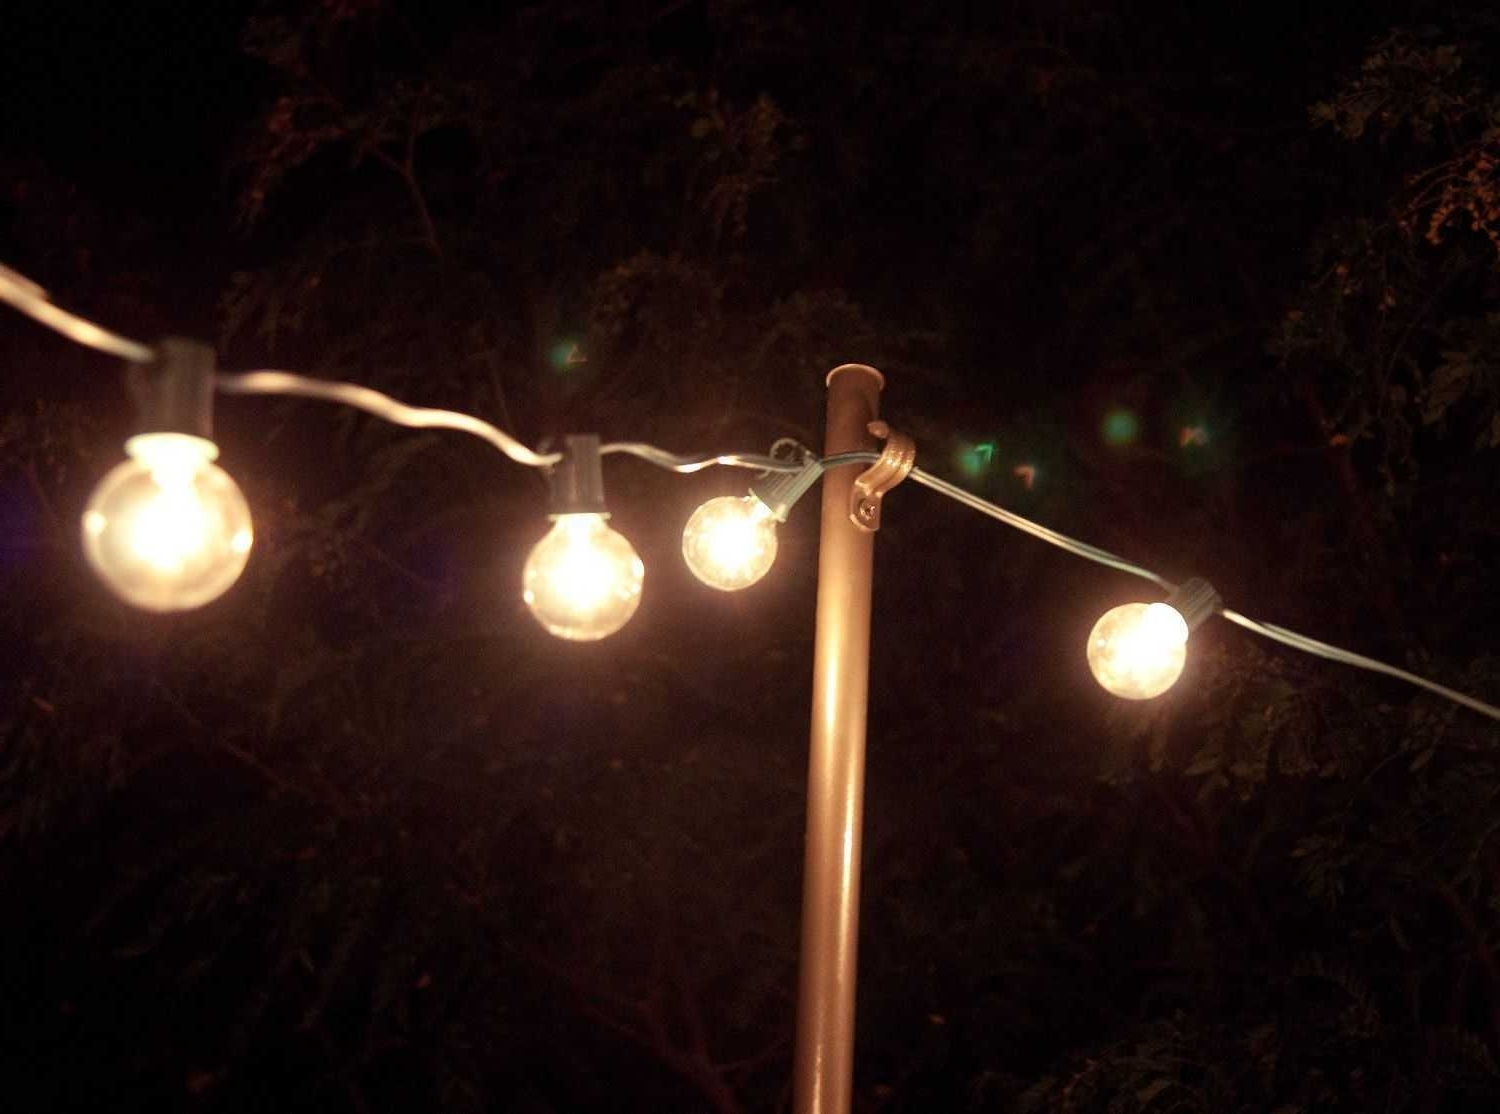 Well Known Hanging Outdoor Lights Without Nails With Regard To Enchanting Best Way Hang String Lights Outdoors Ideas And On Patio (View 18 of 20)